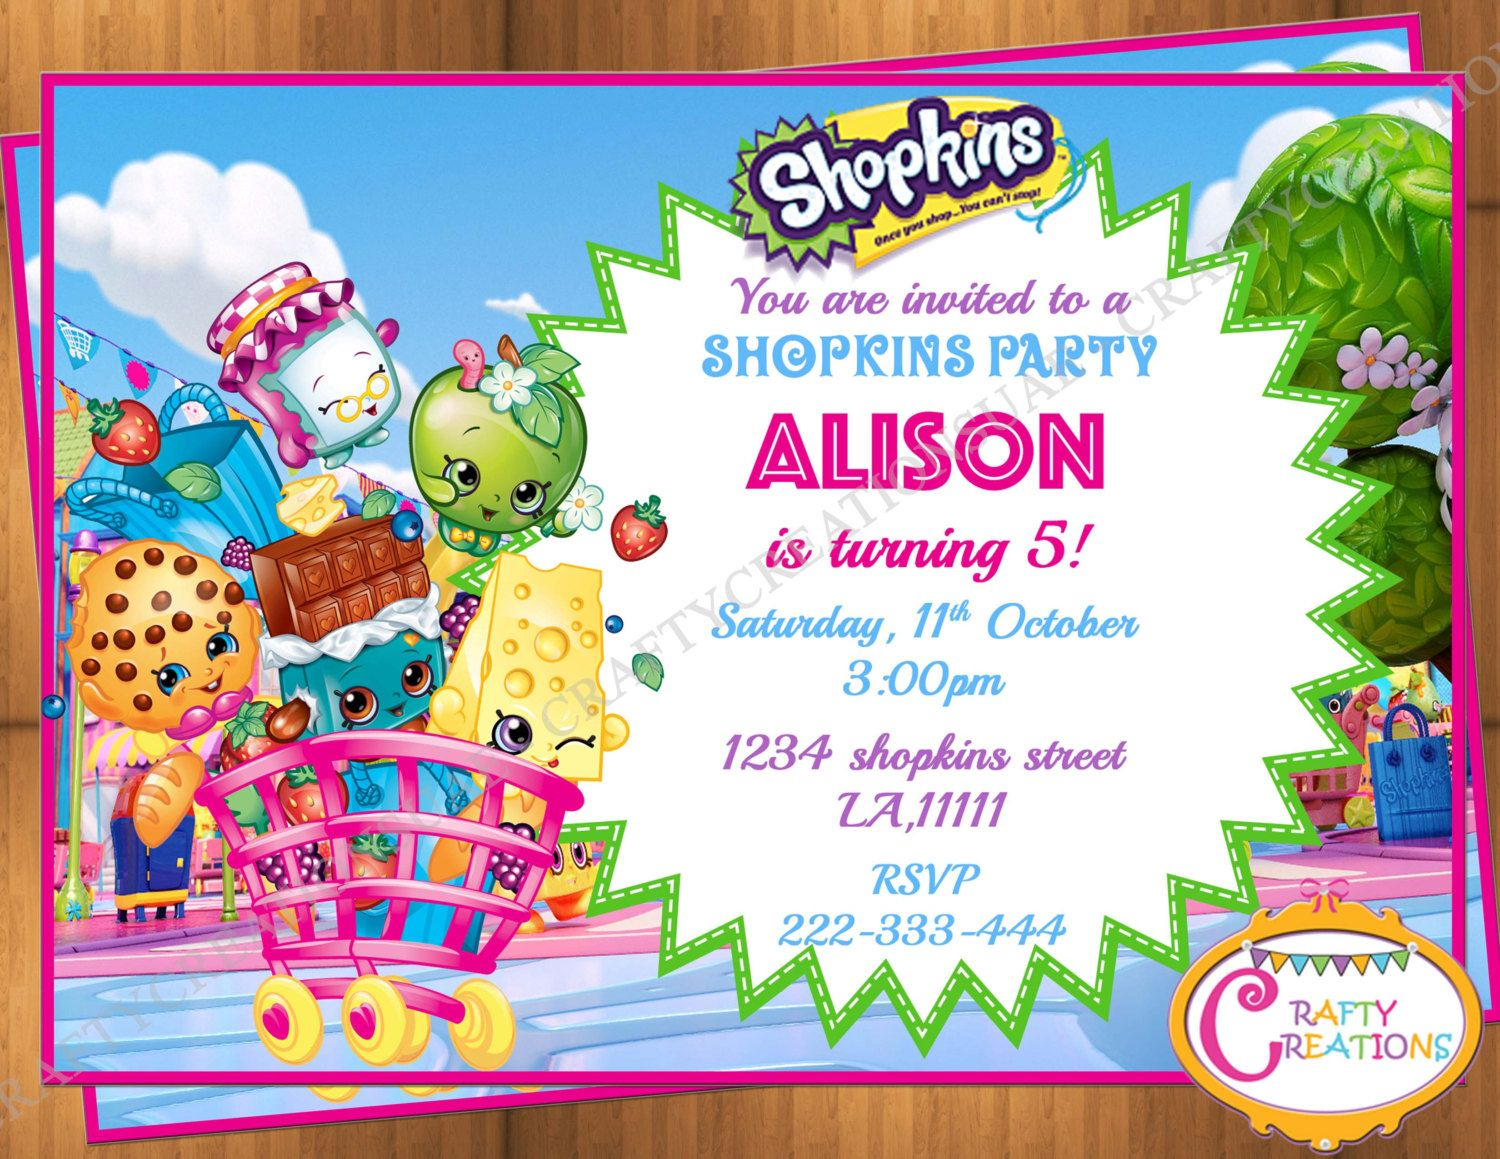 Shopkins Shoppies Birthday Invitation Shopkins Birthday Invite - Blank shopkins birthday invitations